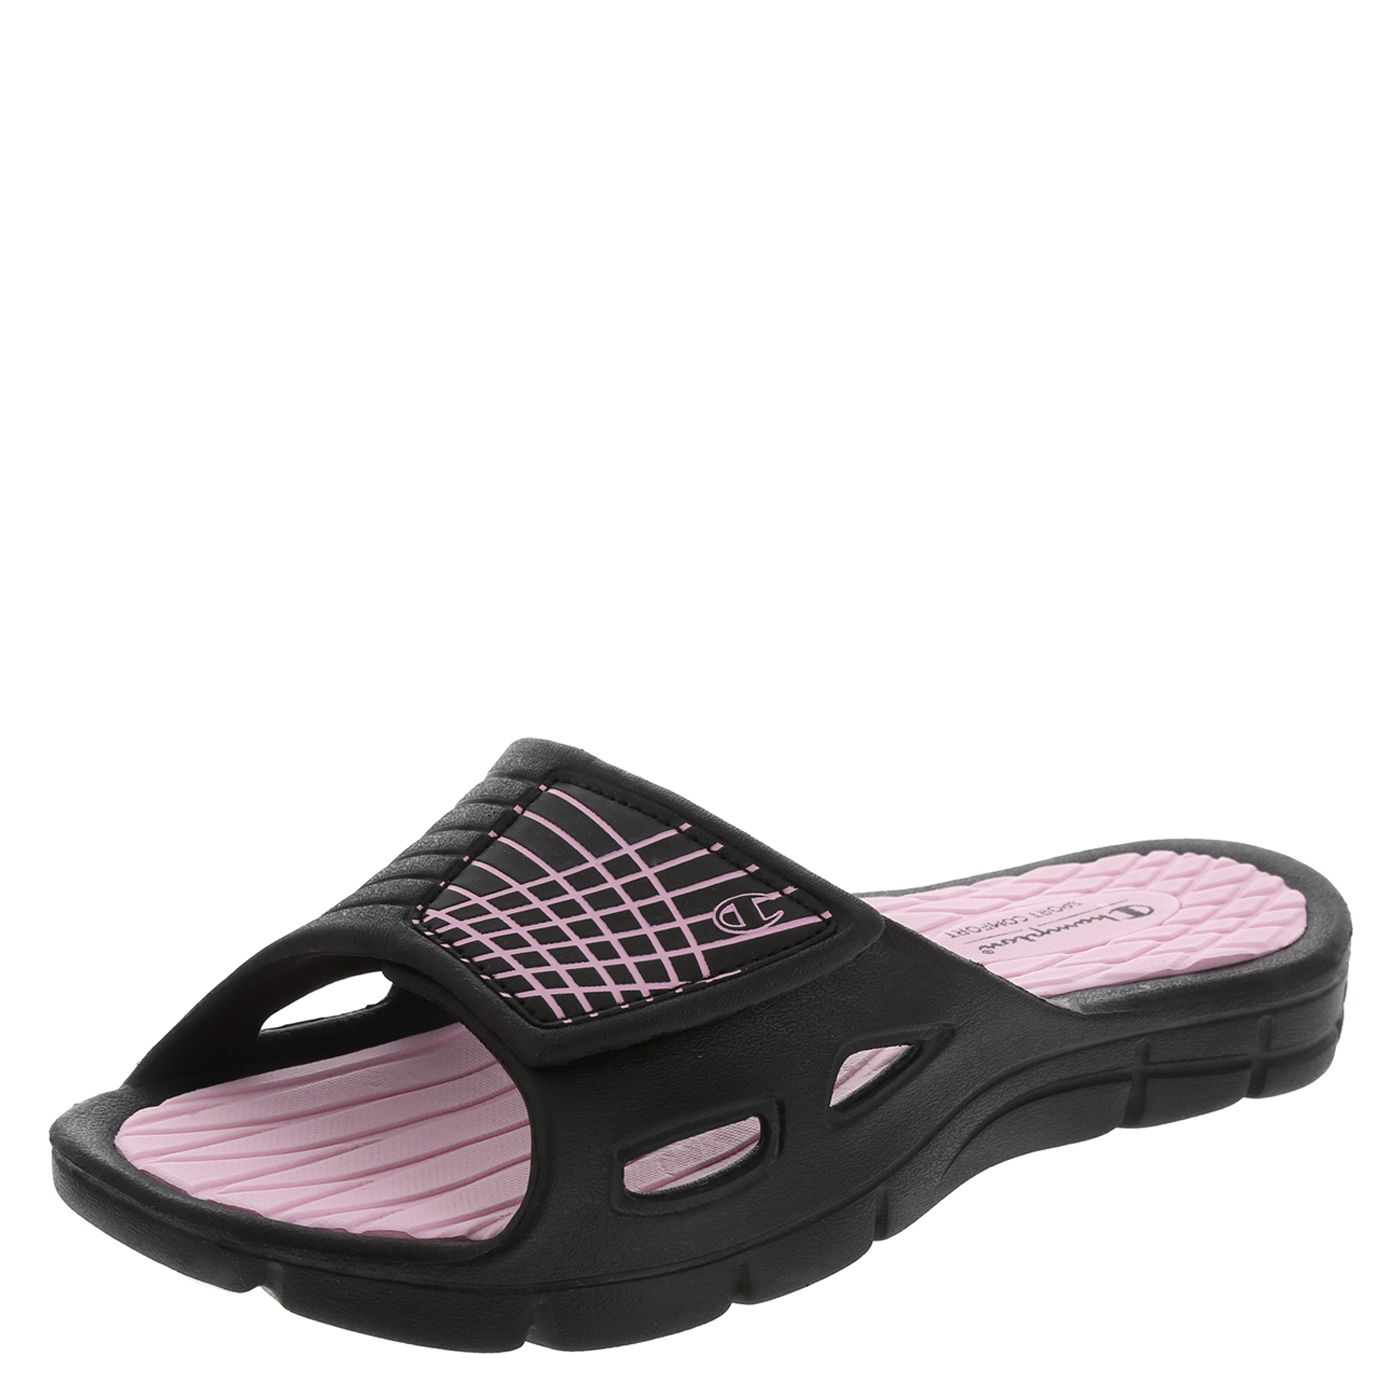 67b53b61a payless.com Champion Women s Coastal Slide (Color - Pink) Pink Shoes